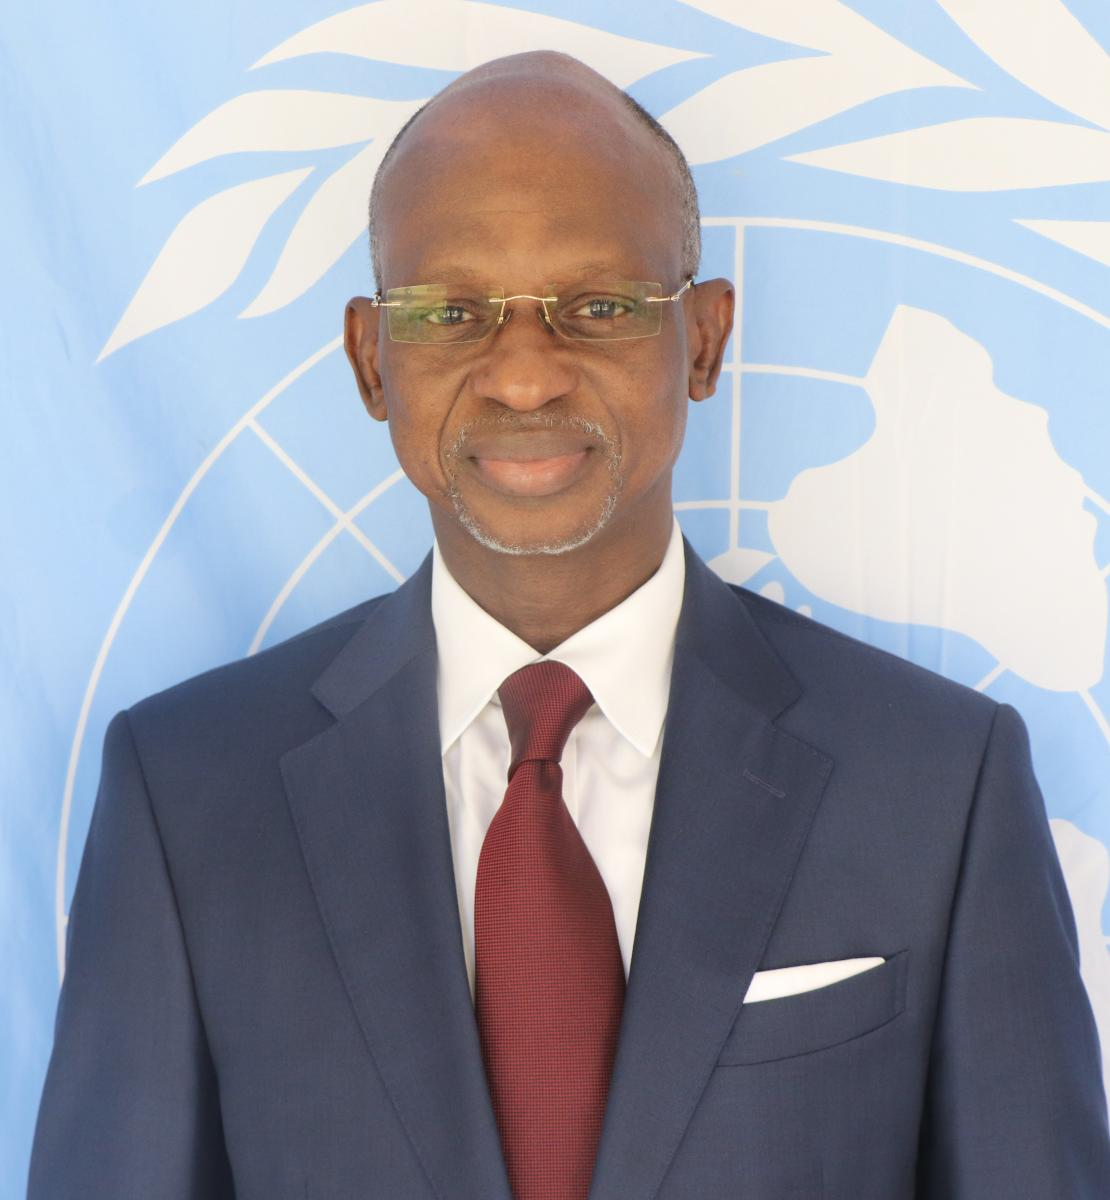 Official photo of the new appointed Resident Coordinator for Senegal, Siaka Coulibaly.